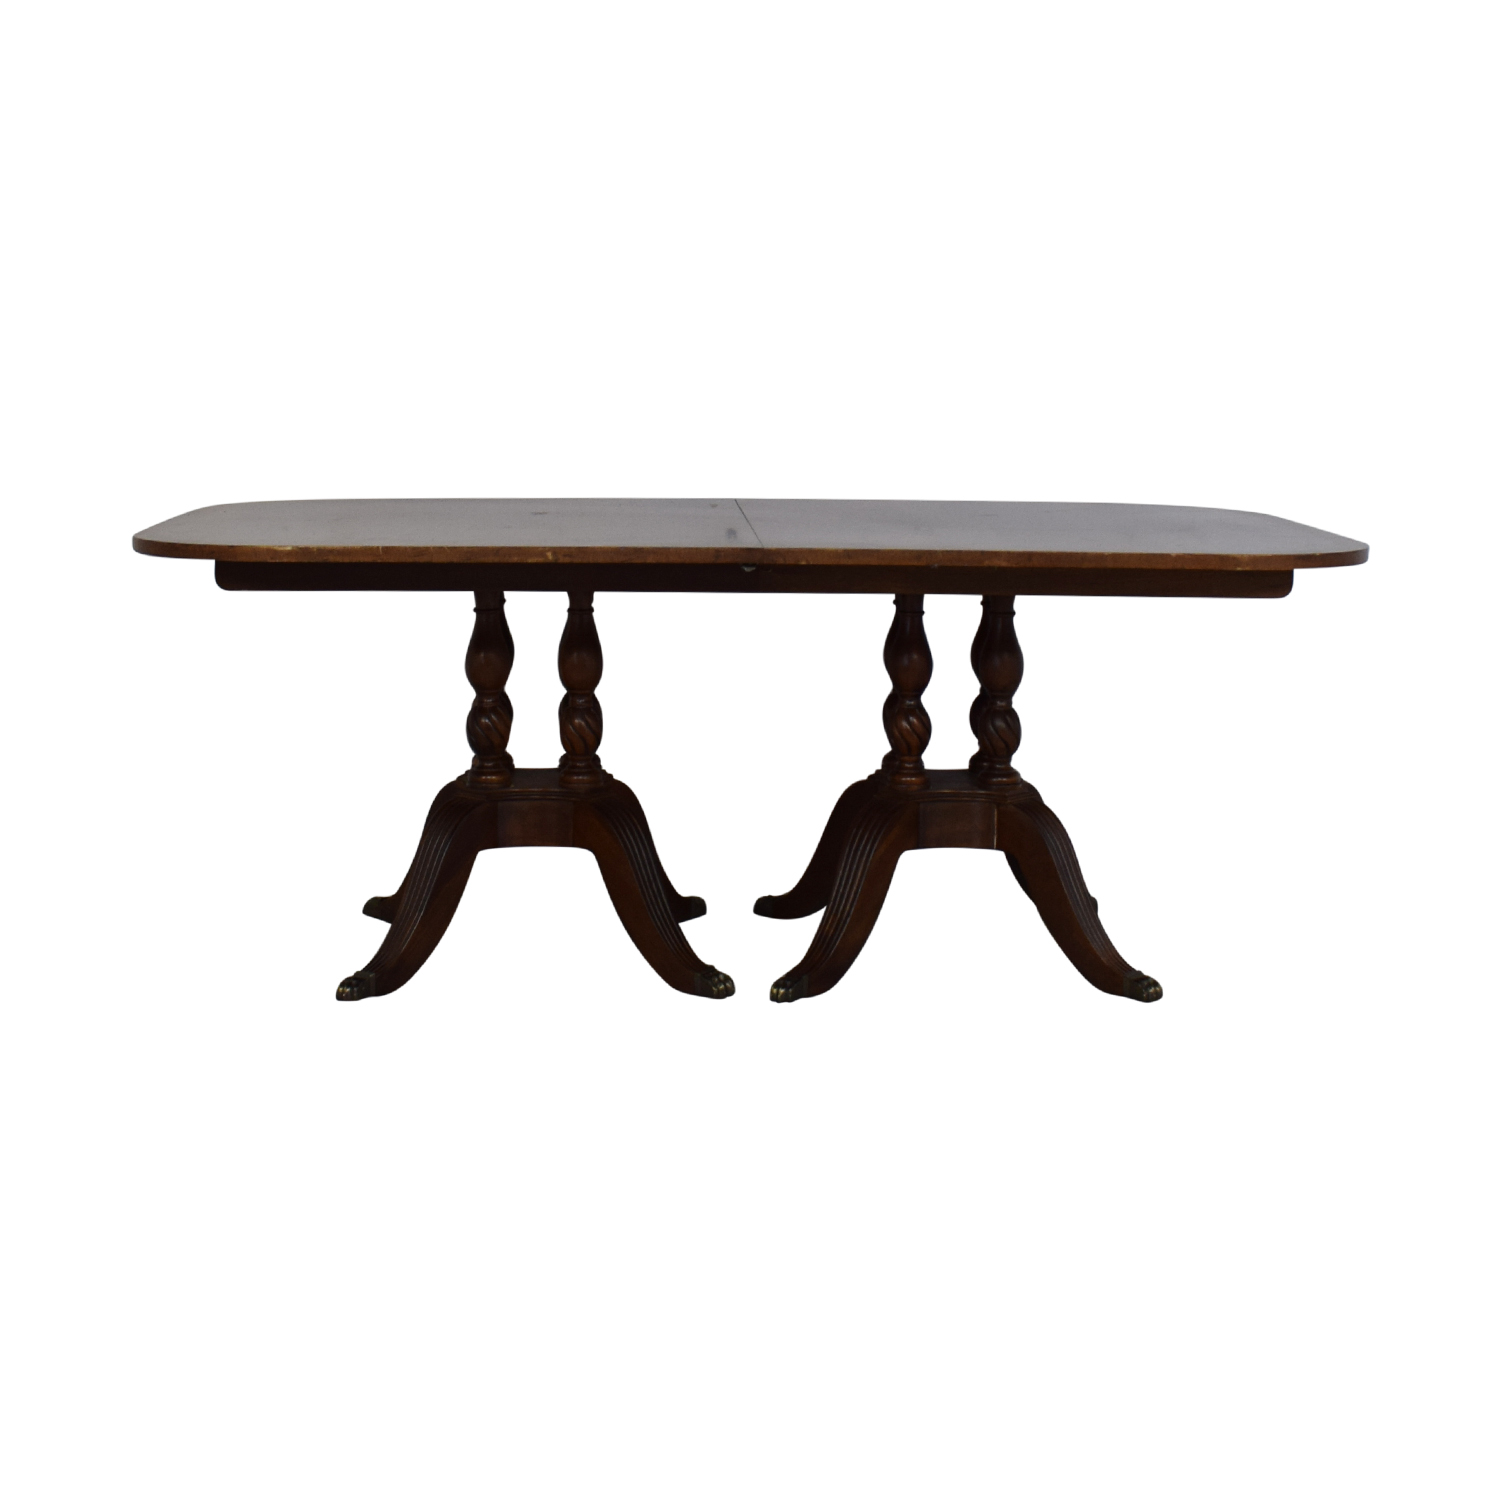 Drexel Heritage Drexel Heritage Dinner Table dark brown